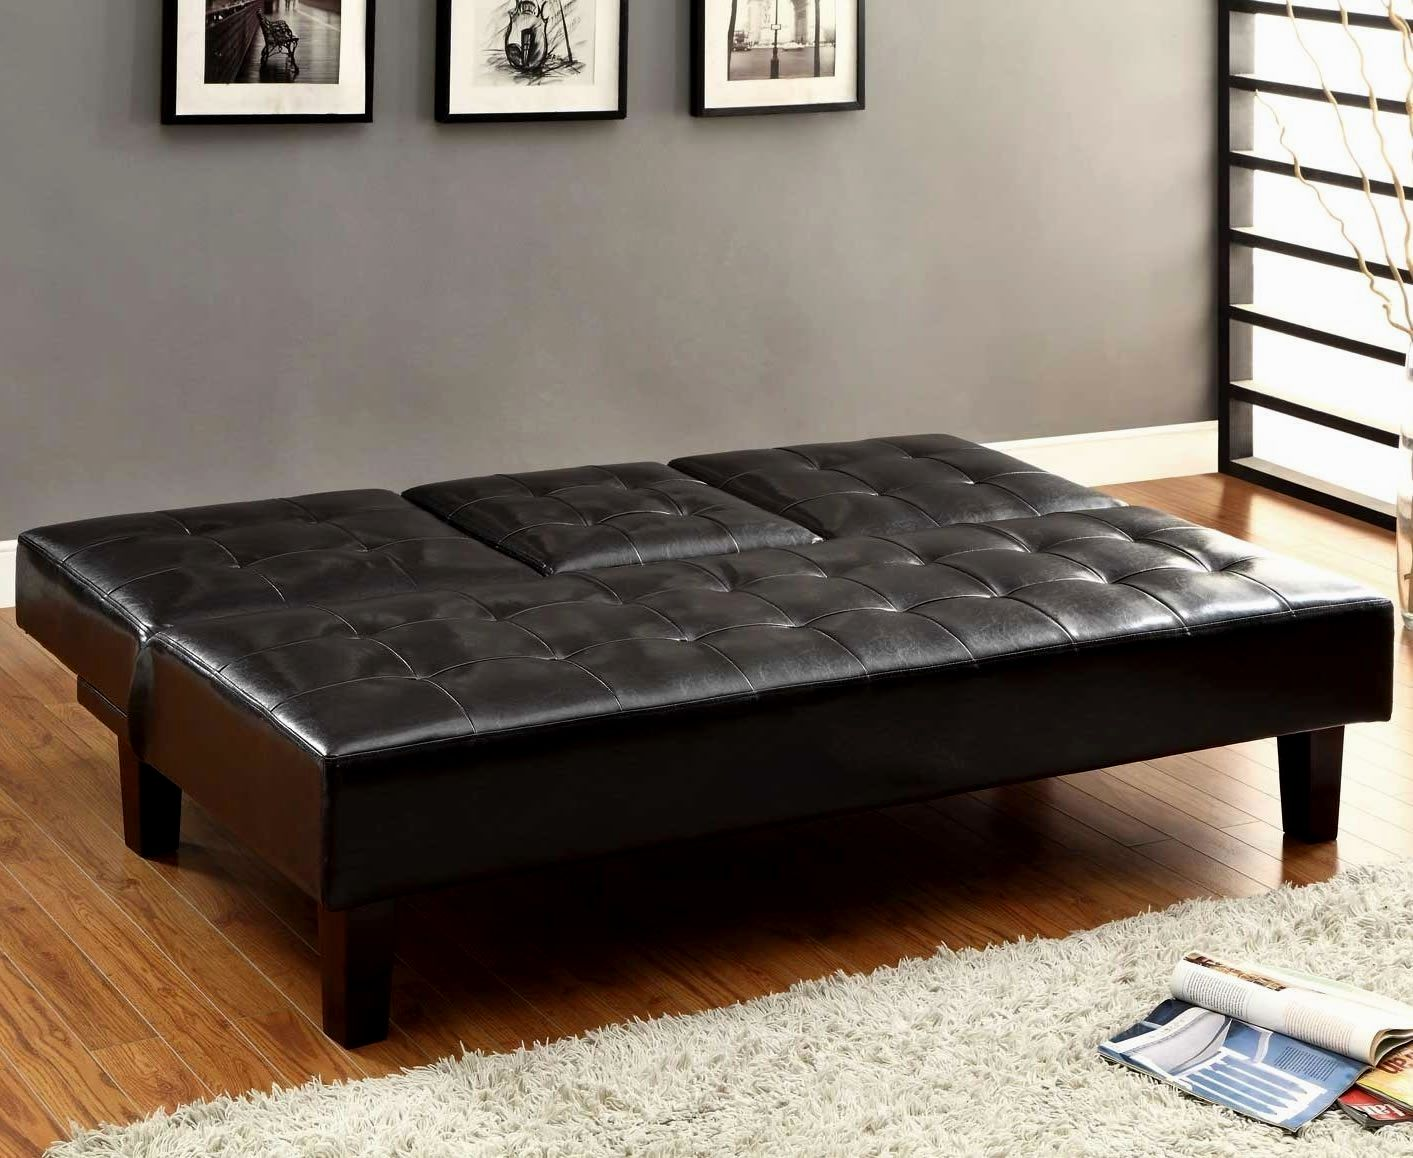 new klik klak sofa ideas-Top Klik Klak sofa Decoration